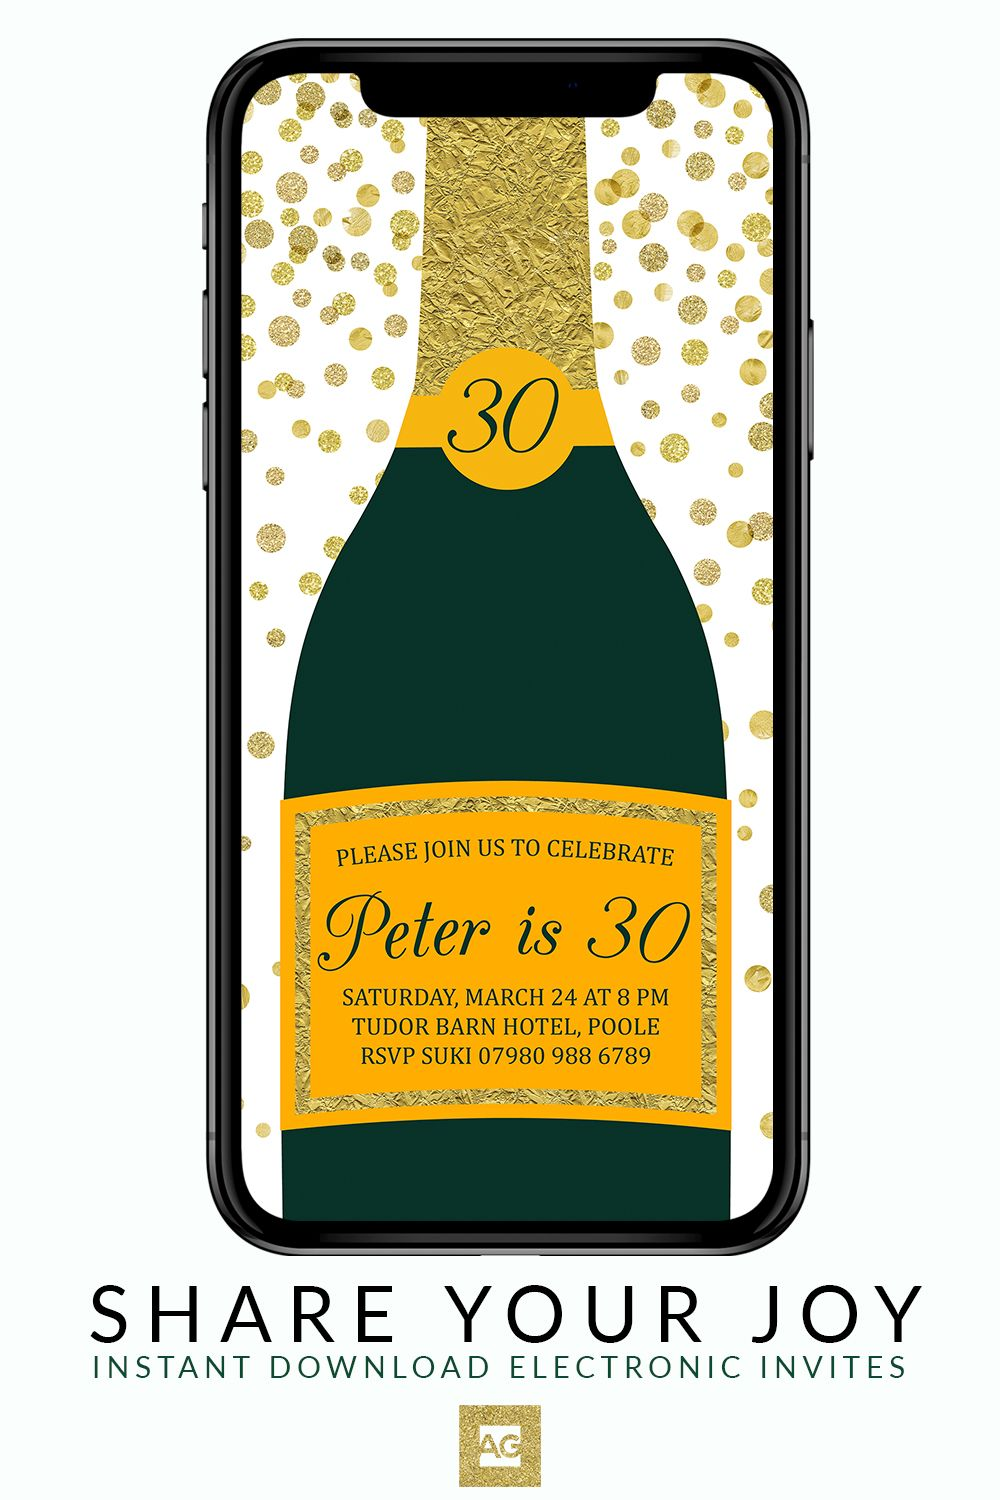 Champagne Bottle Party Invitation With Gold Confetti